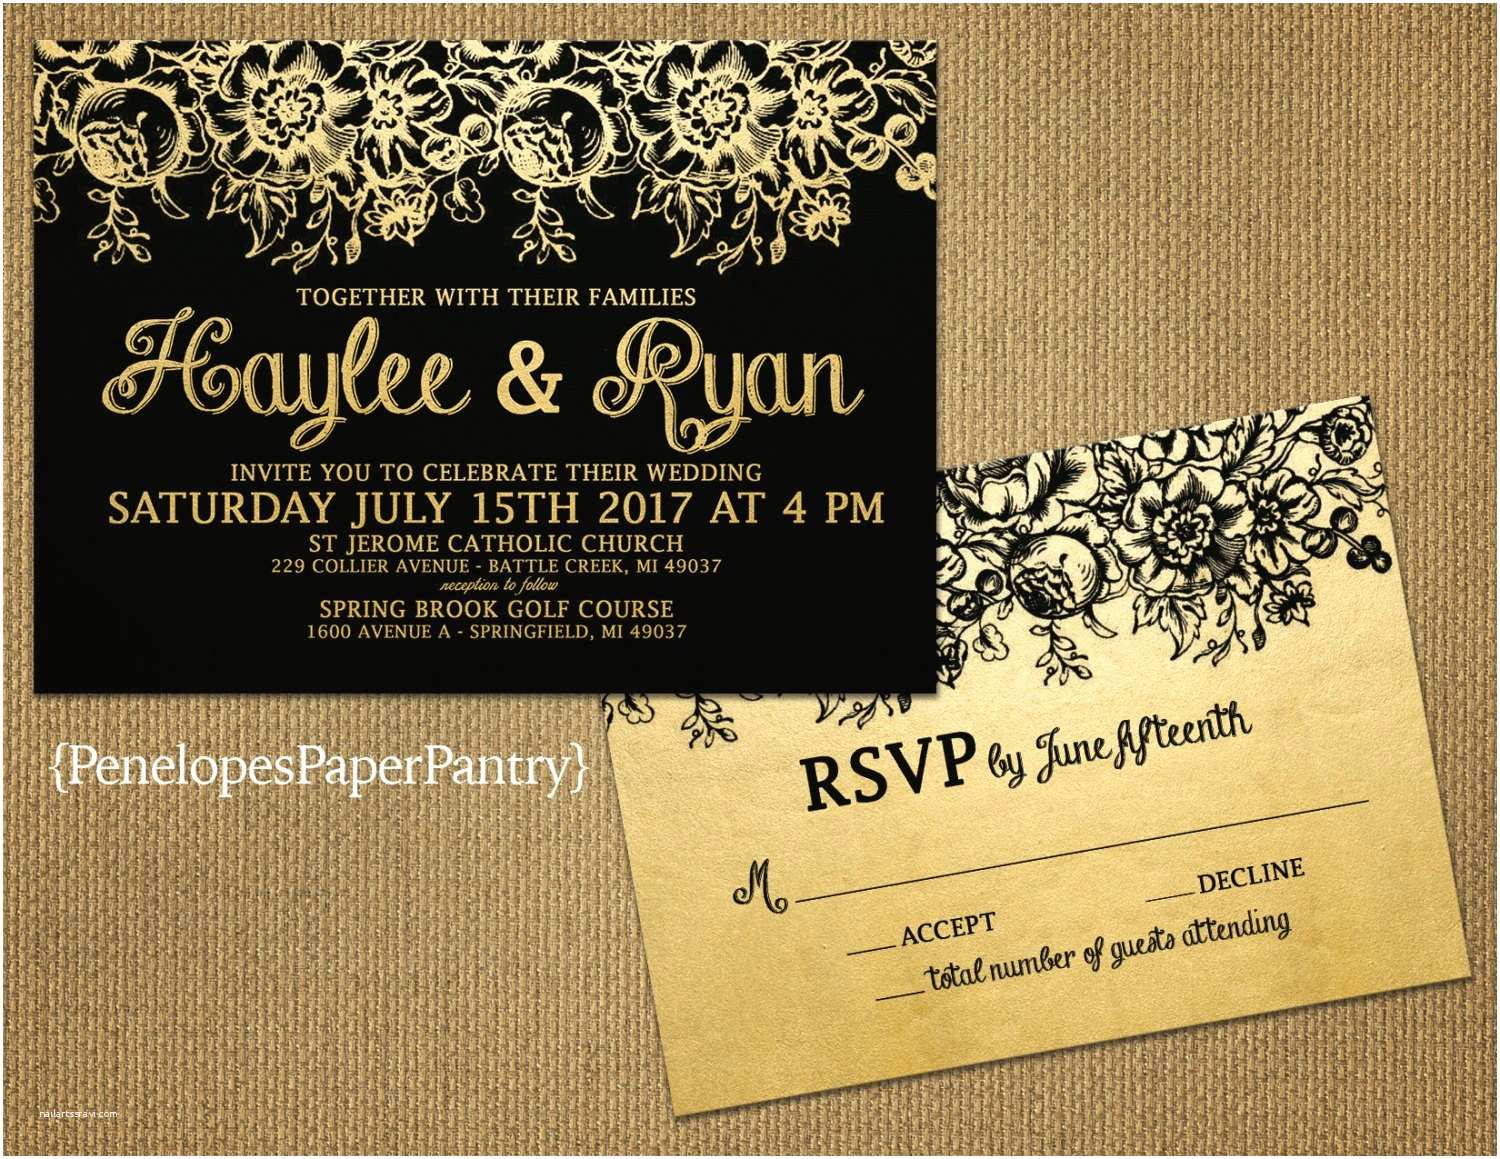 Elegant Black and Gold Wedding Invitations Elegant Black and Gold Wedding Invitations Vintage Flourishes